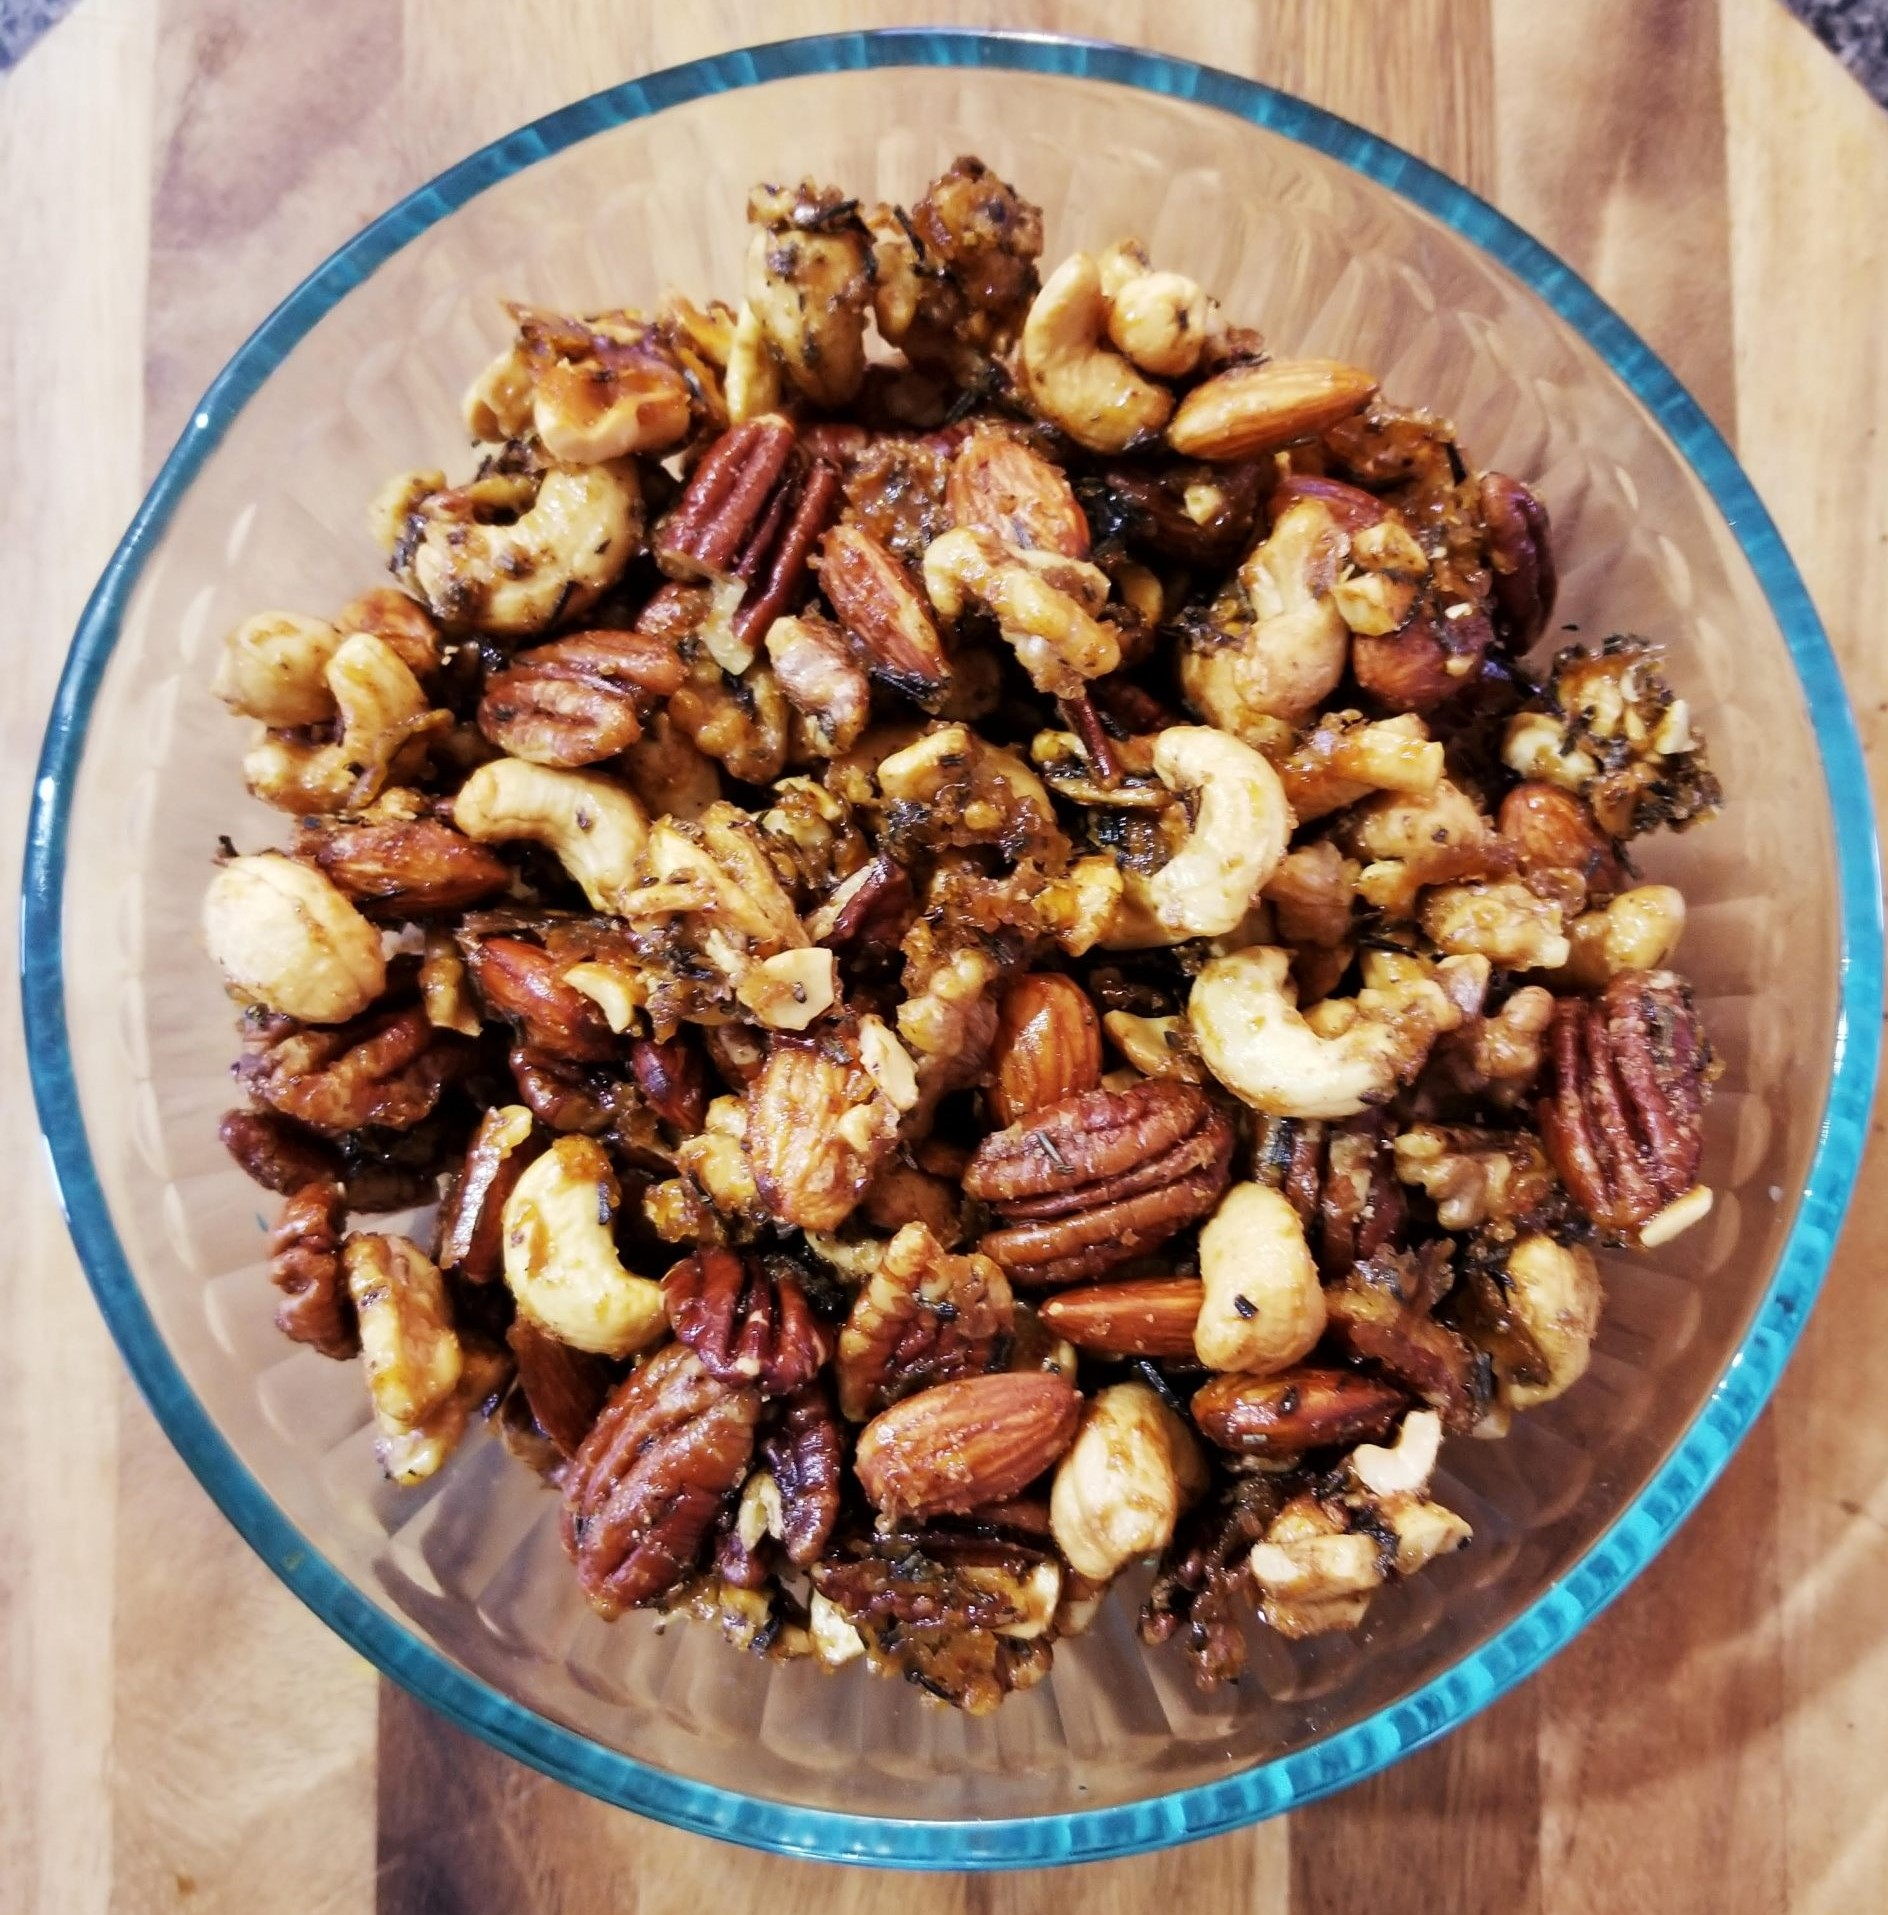 Sweet-and-spicy-nuts-scaled (3)